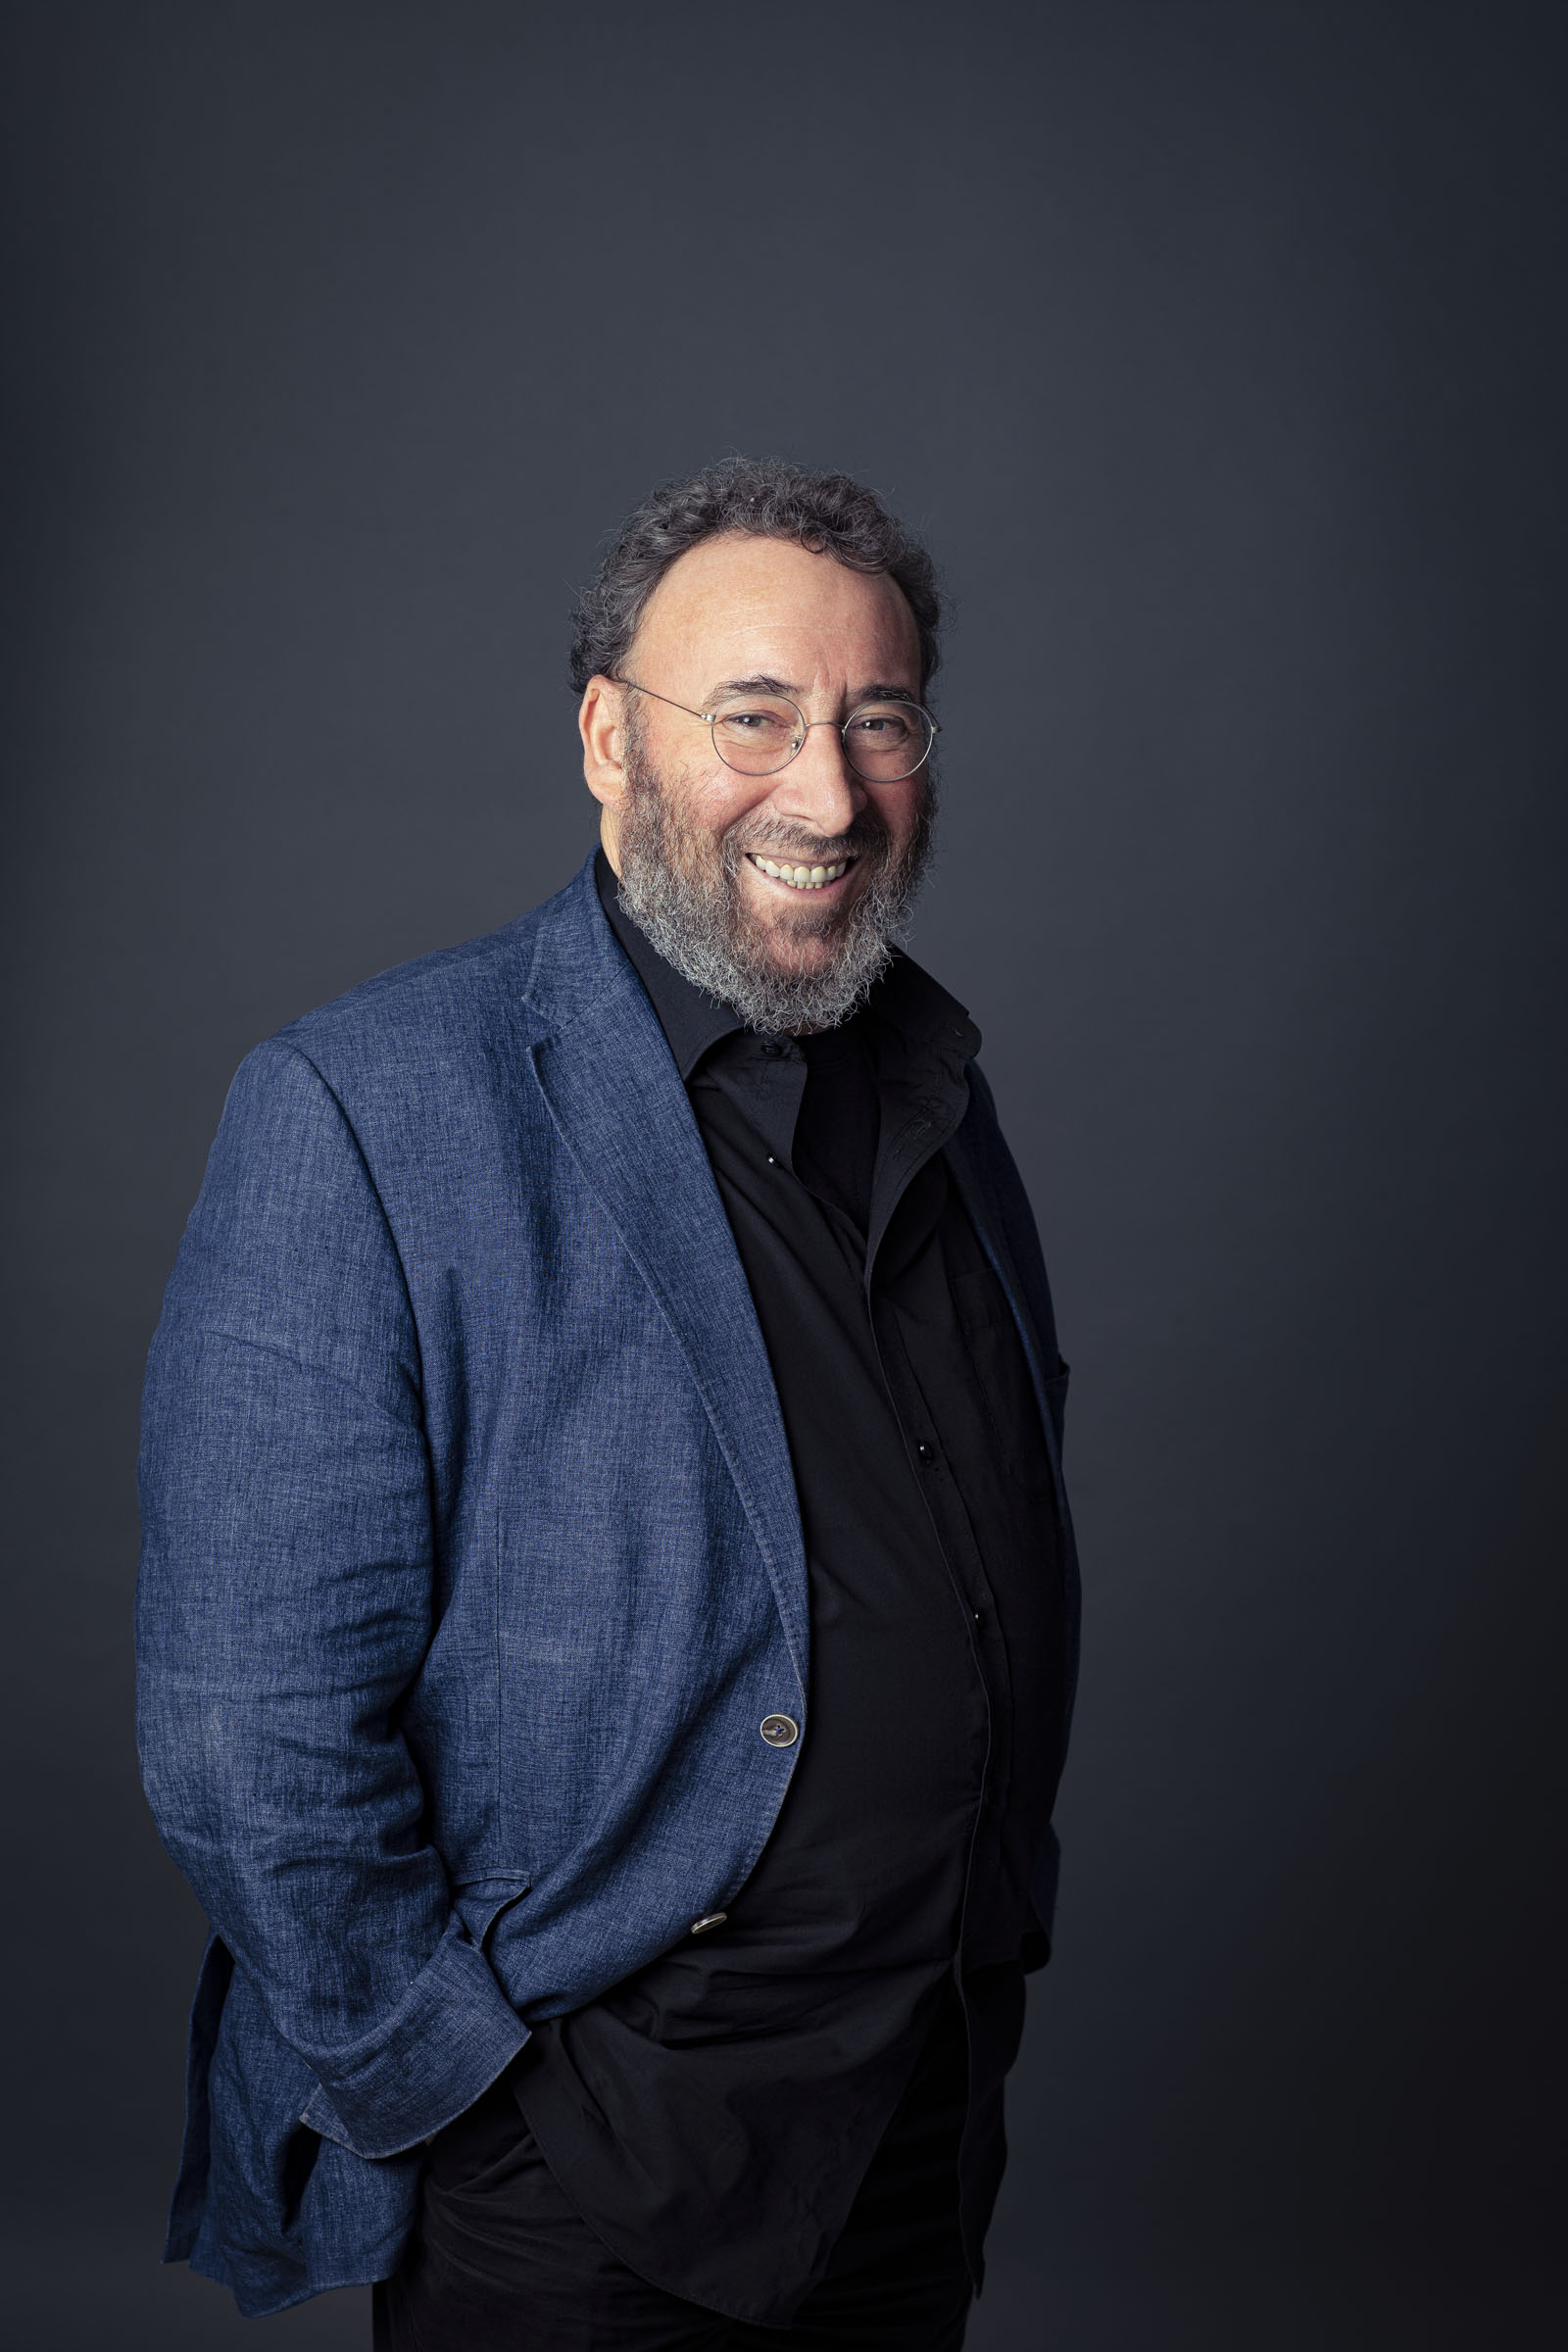 A portrait of Sir Antony Sher by Helen Maybanks